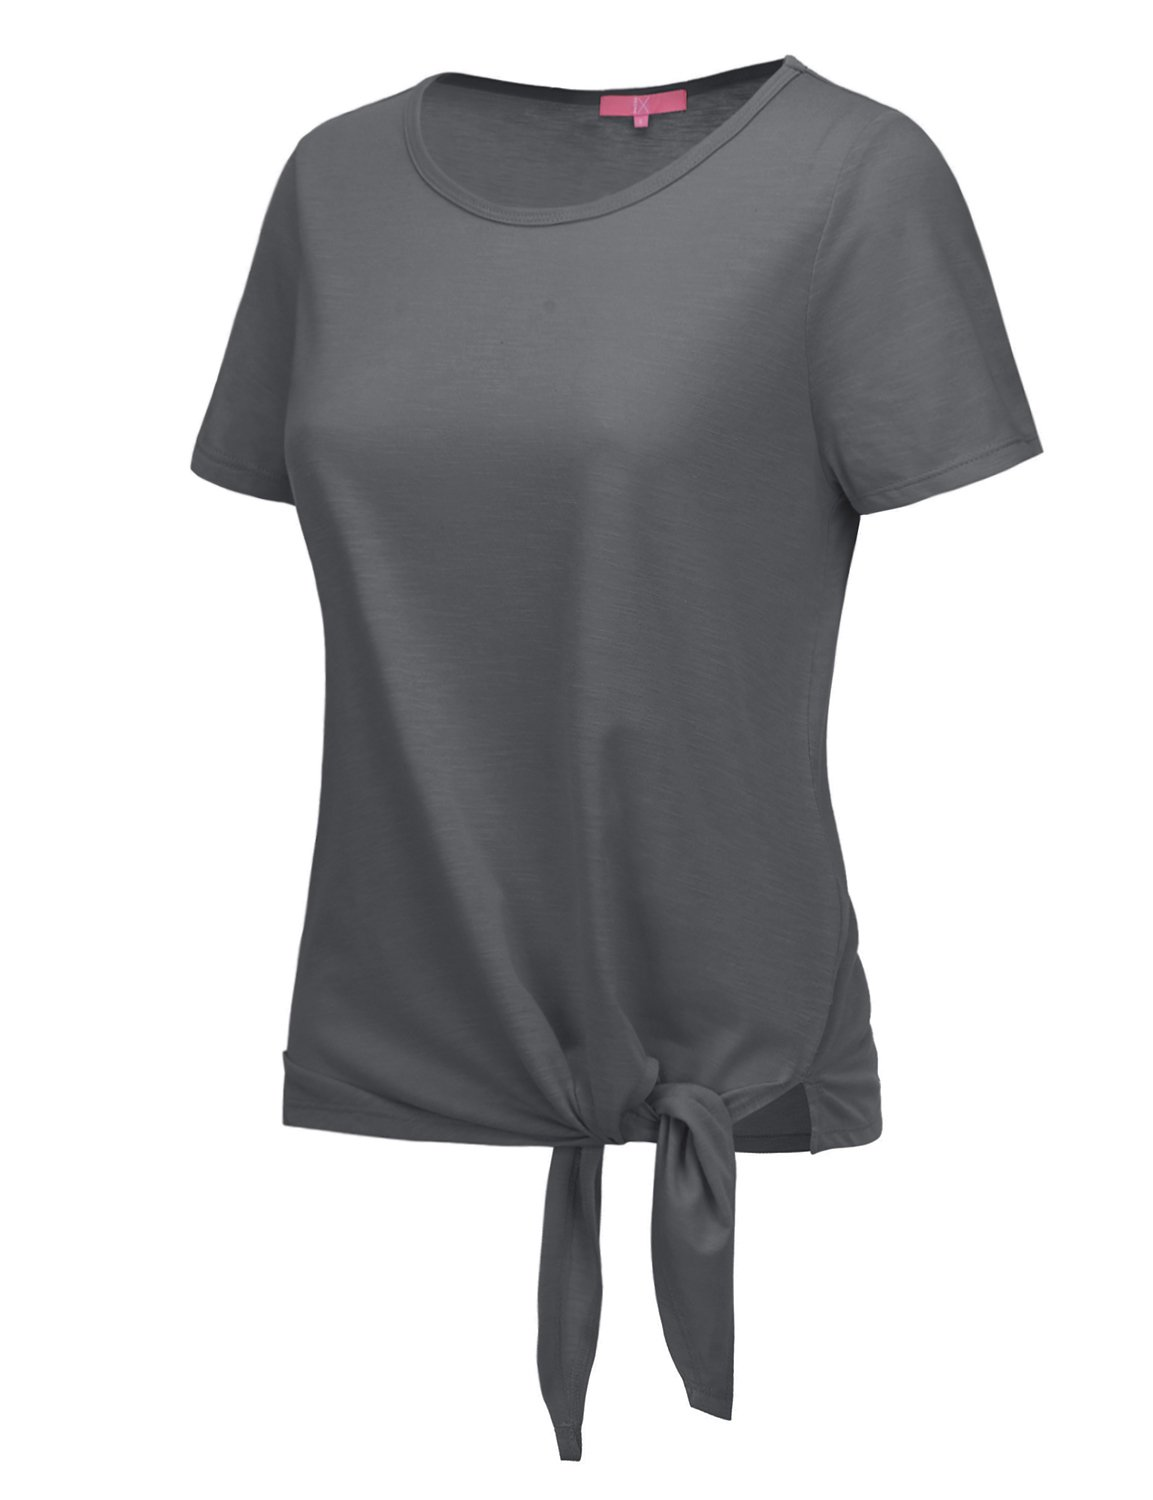 RENGA X No Bother Women's Round Neck Short Sleeve Cool Dri Performance Tee by Regna X